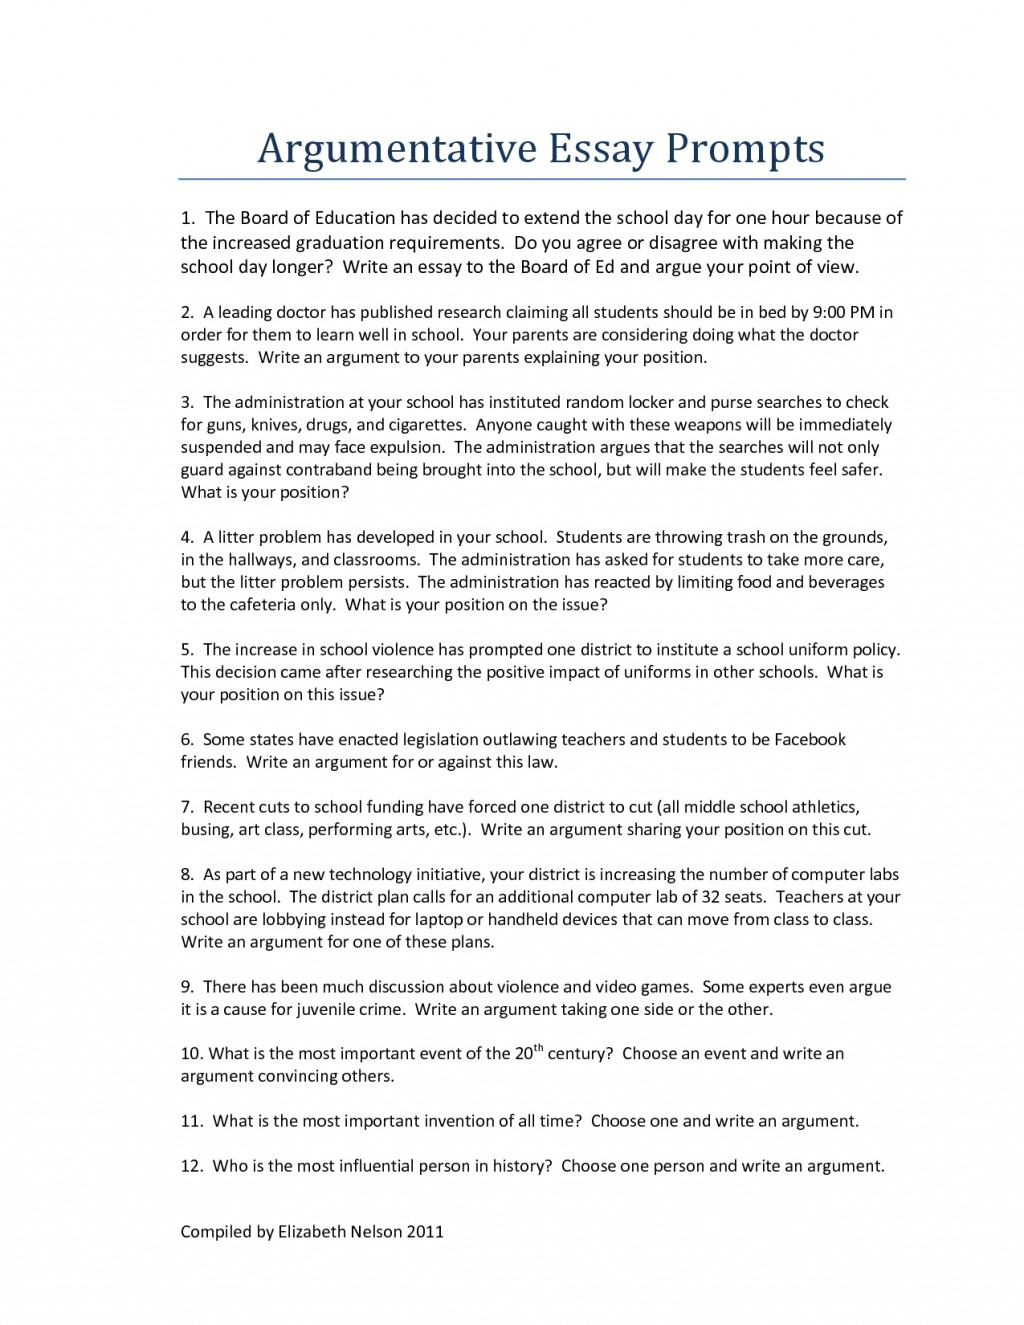 004 Topics For Argumentative Essays Essay Example Middle School Writings And Good Persuasive High Argument Speech About Uniform Education Uniforms Rules Incredible Grade 7 College Students Easy Sample Large